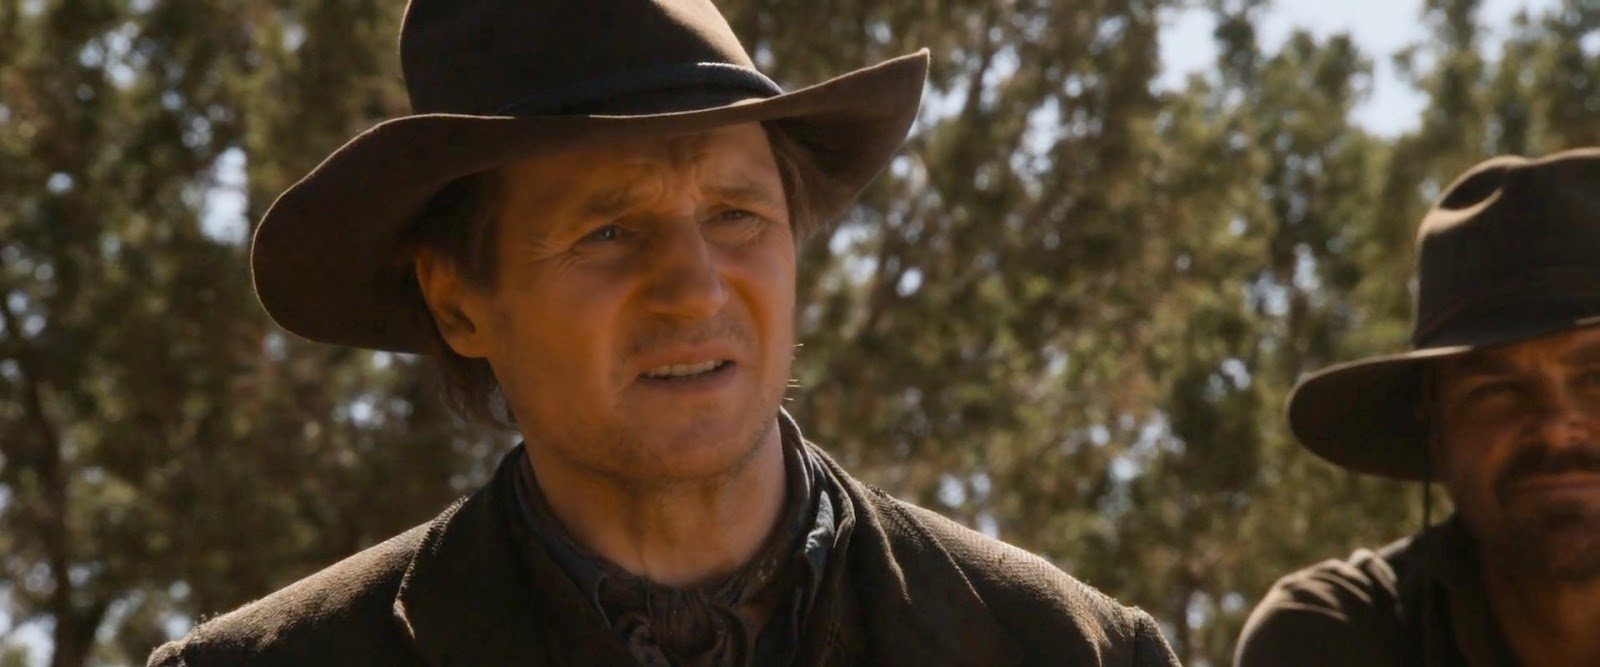 A Million Ways to Die in the West (2014) S4 s A Million Ways to Die in the West (2014)